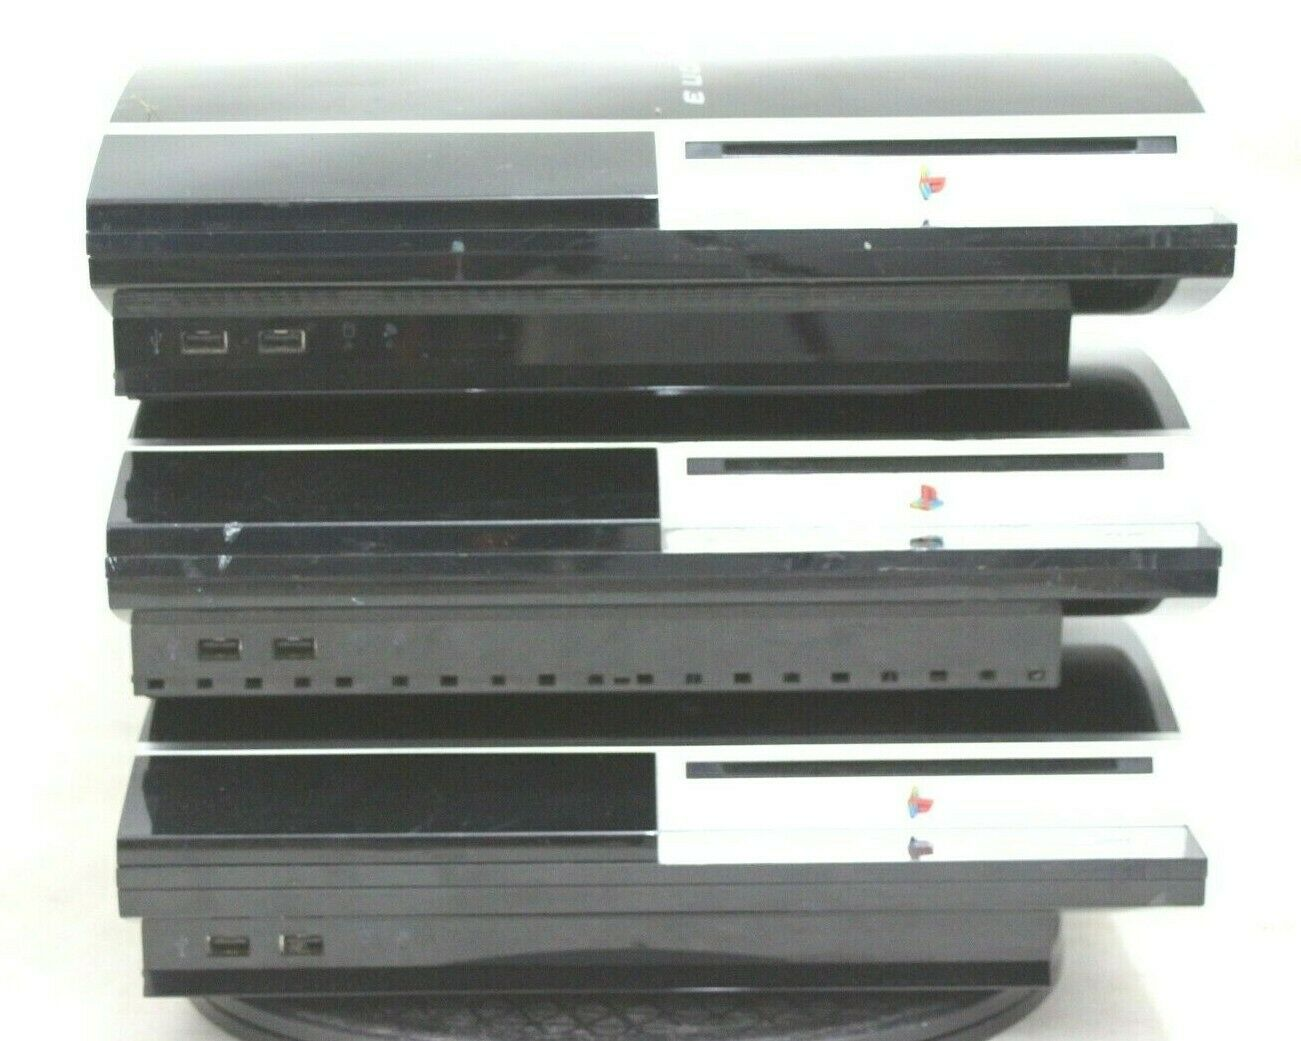 Sony PS3 Console Joblot of 3 untested units